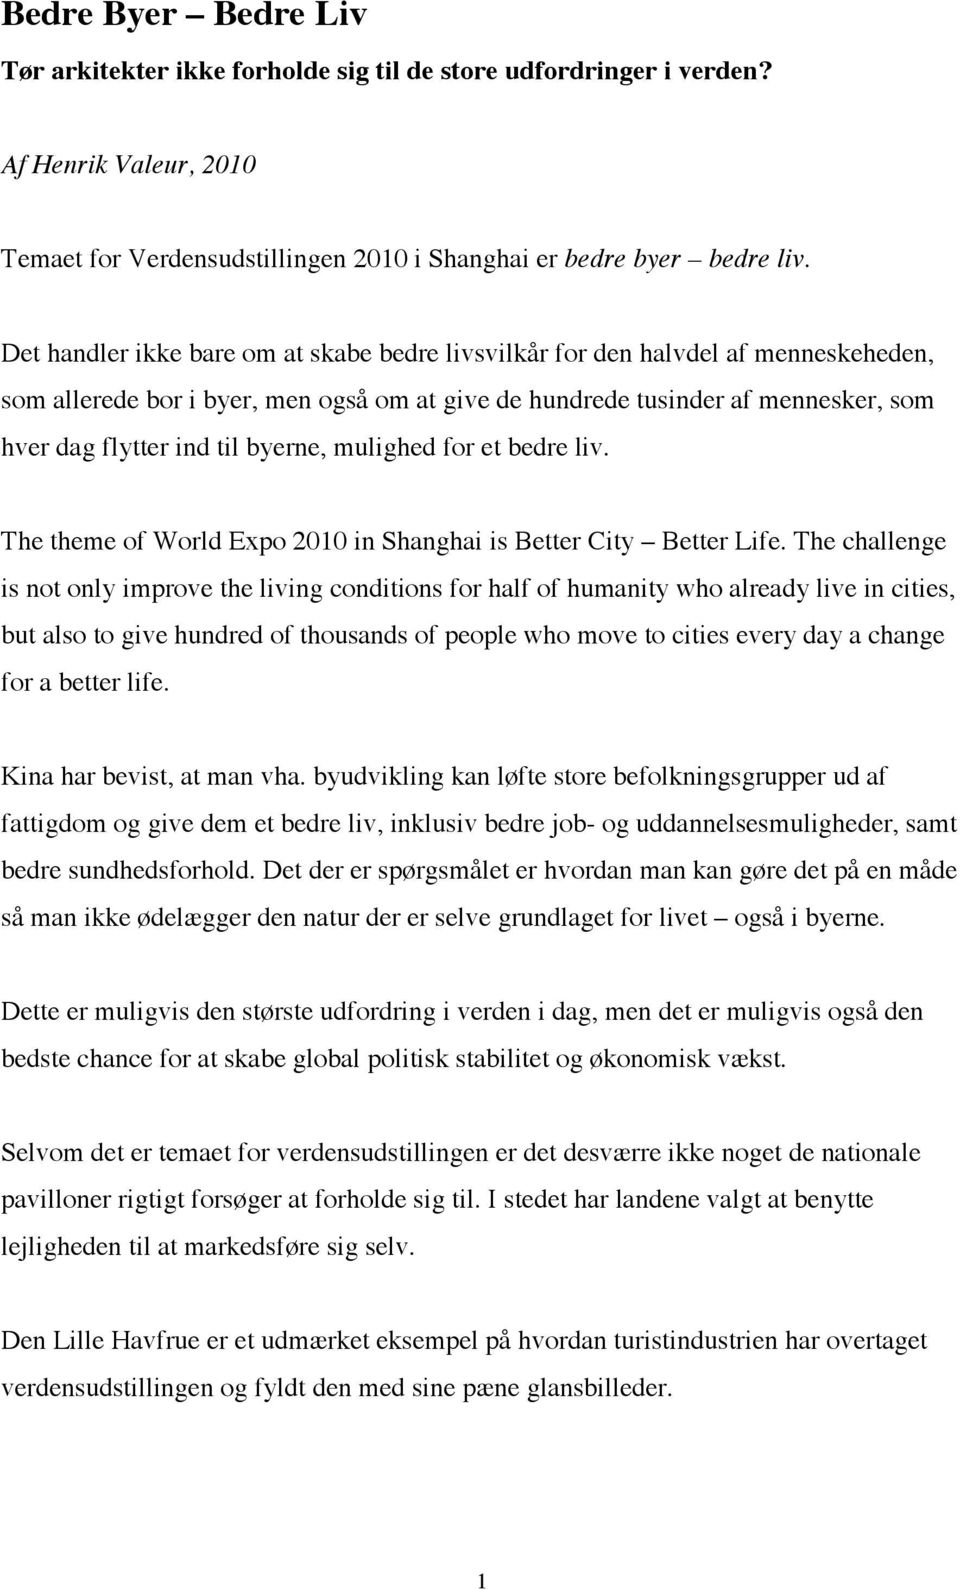 byerne, mulighed for et bedre liv. The theme of World Expo 2010 in Shanghai is Better City Better Life.